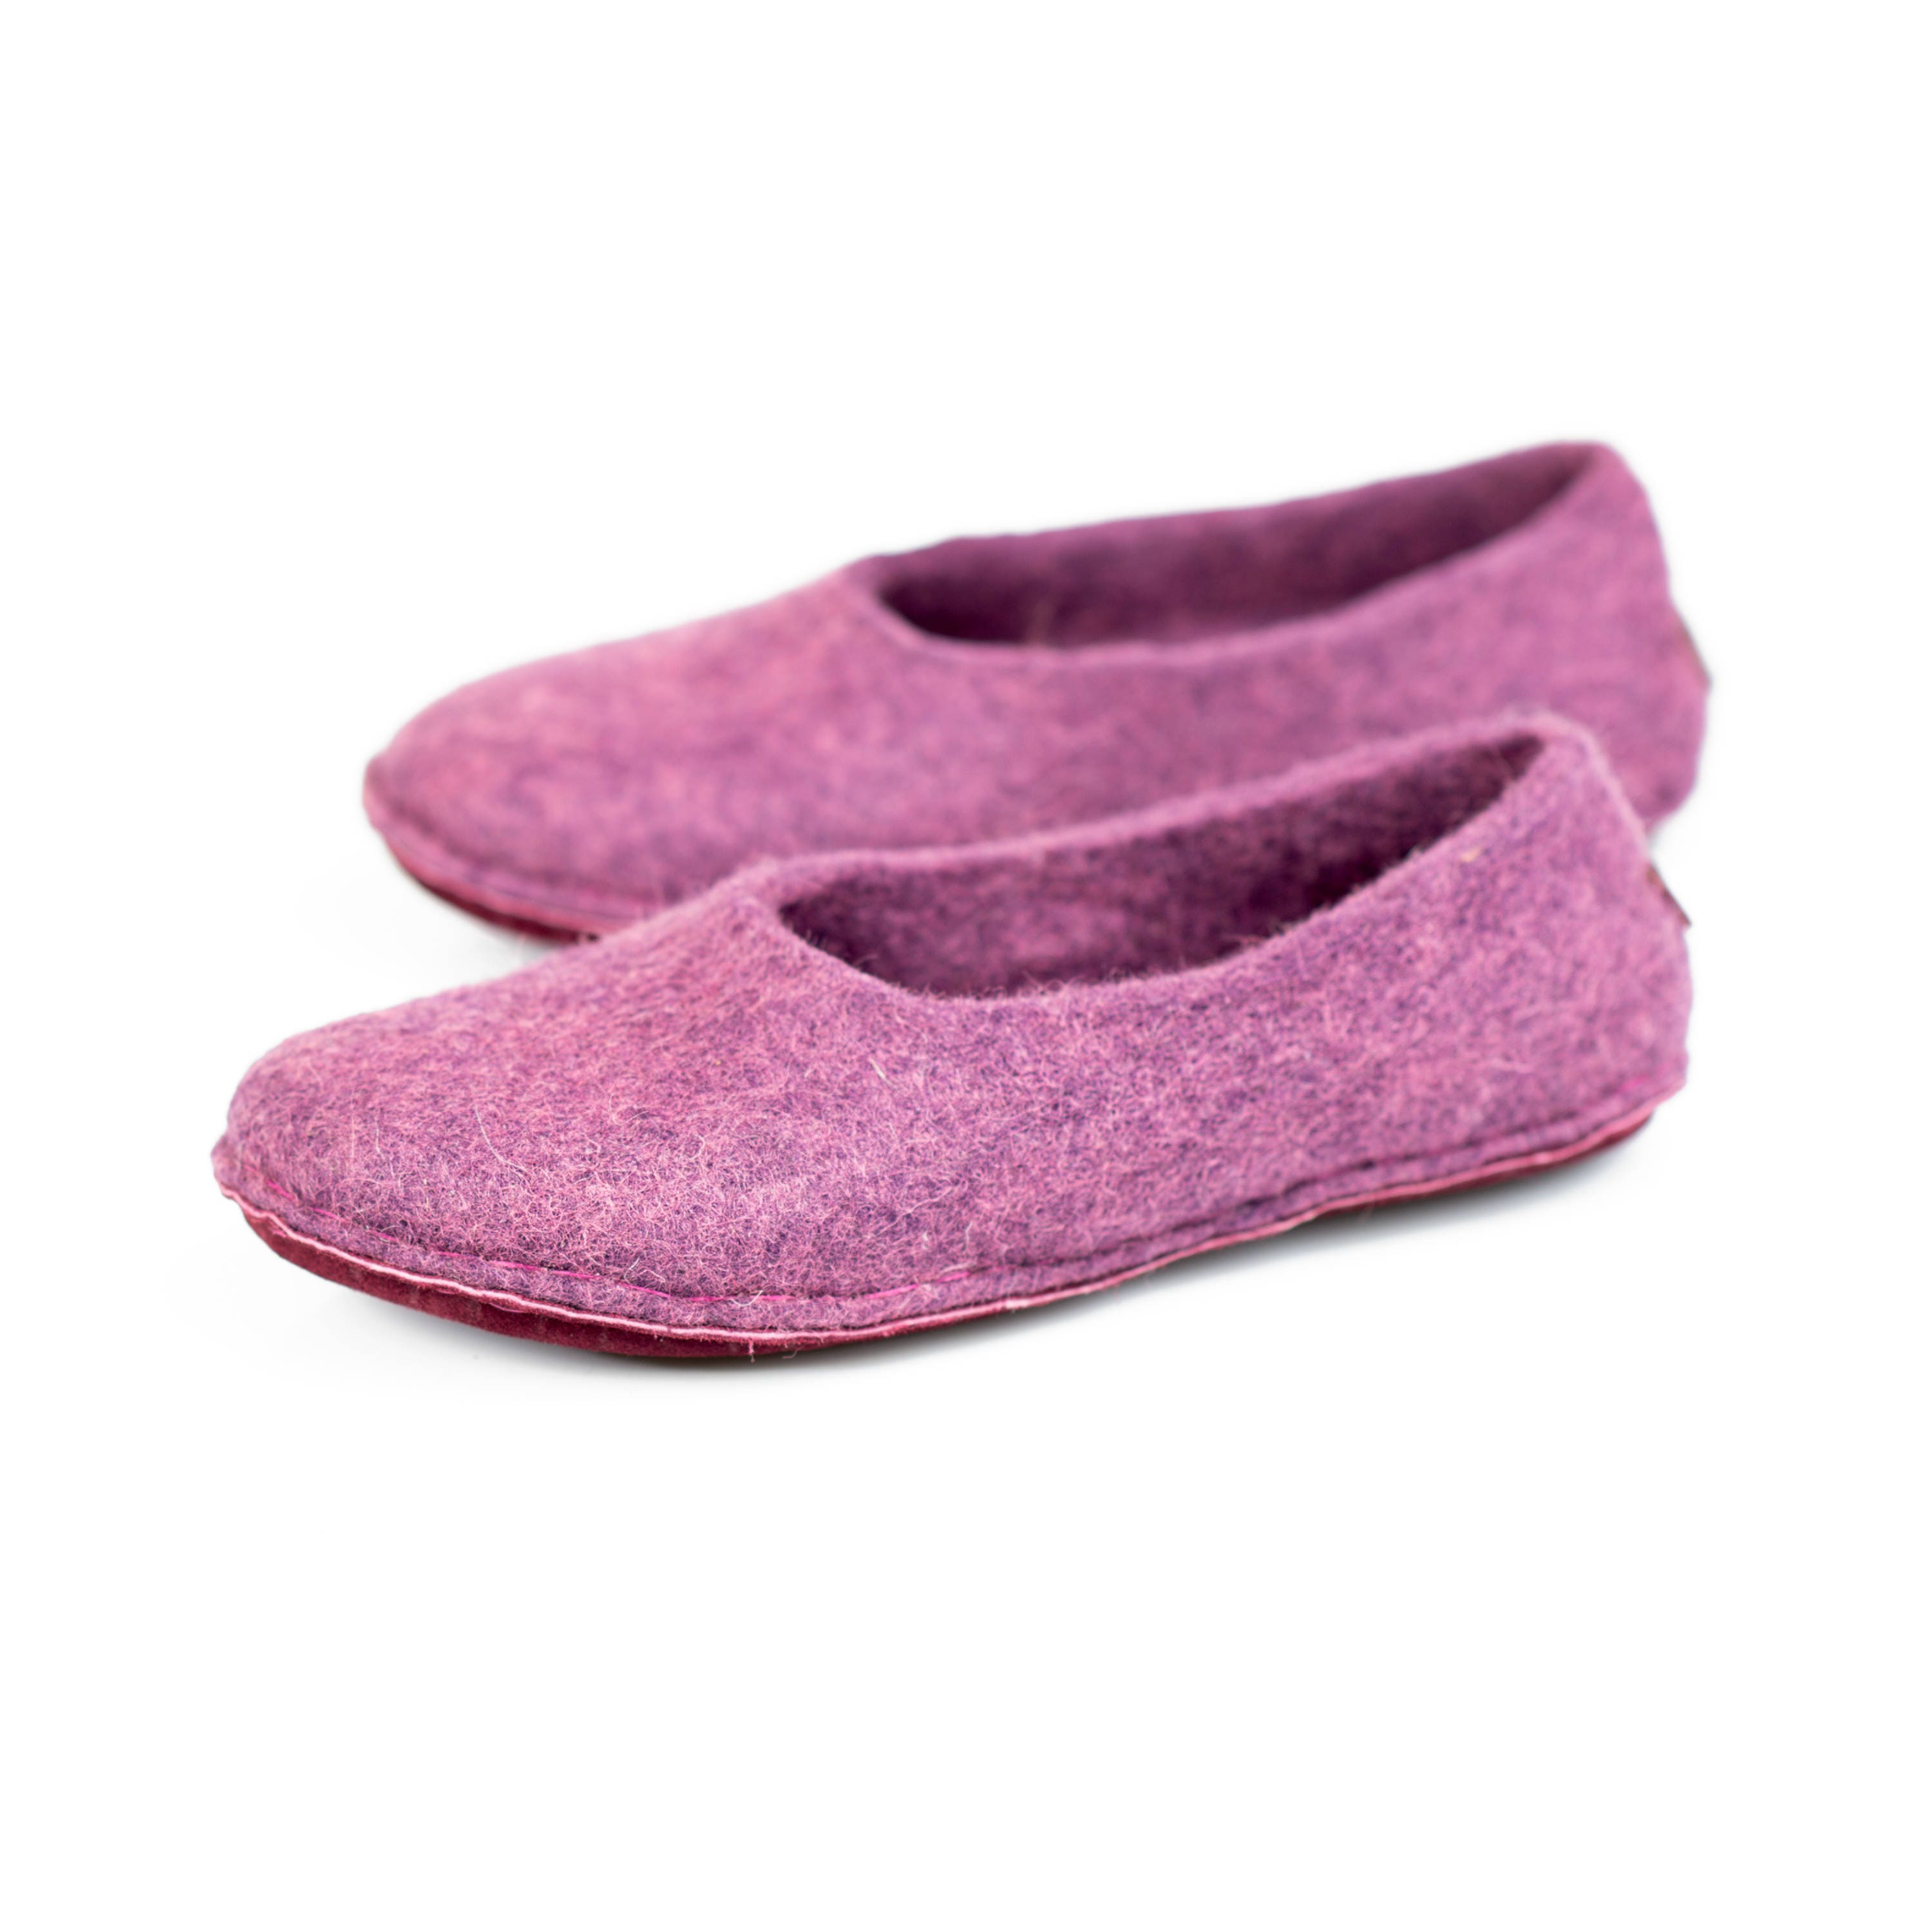 Hygge all handmade ultra violet felted slippers for women - Ladies bedroom slippers with heel ...